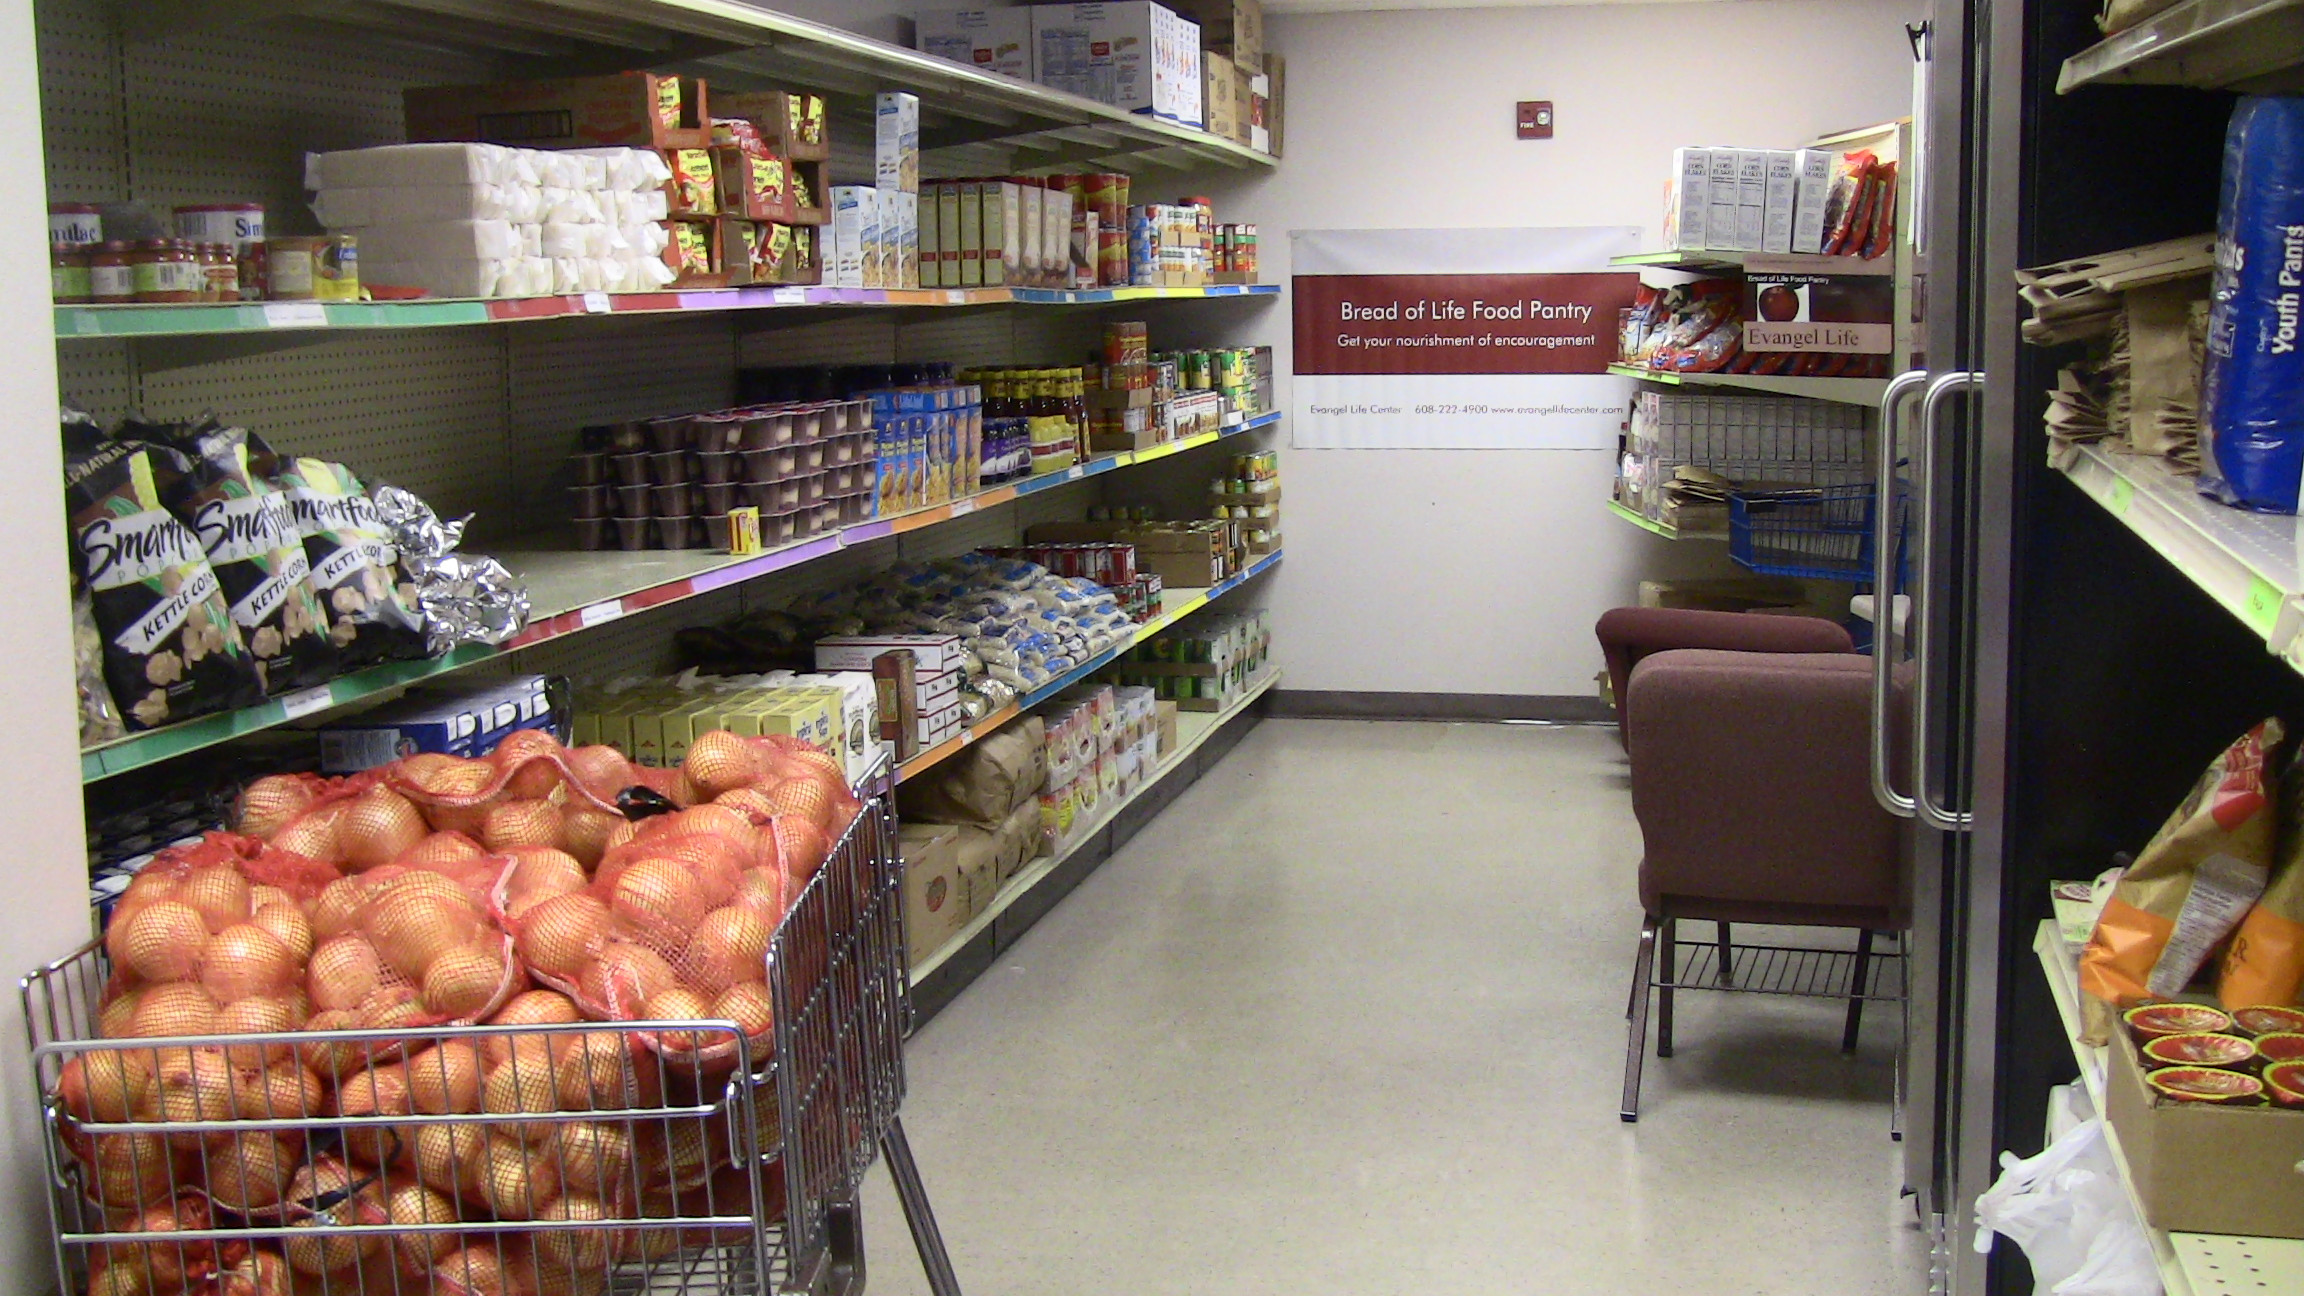 Best ideas about River Food Pantry . Save or Pin River Food Pantry Madison Wi Madison WI Food Pantries Now.